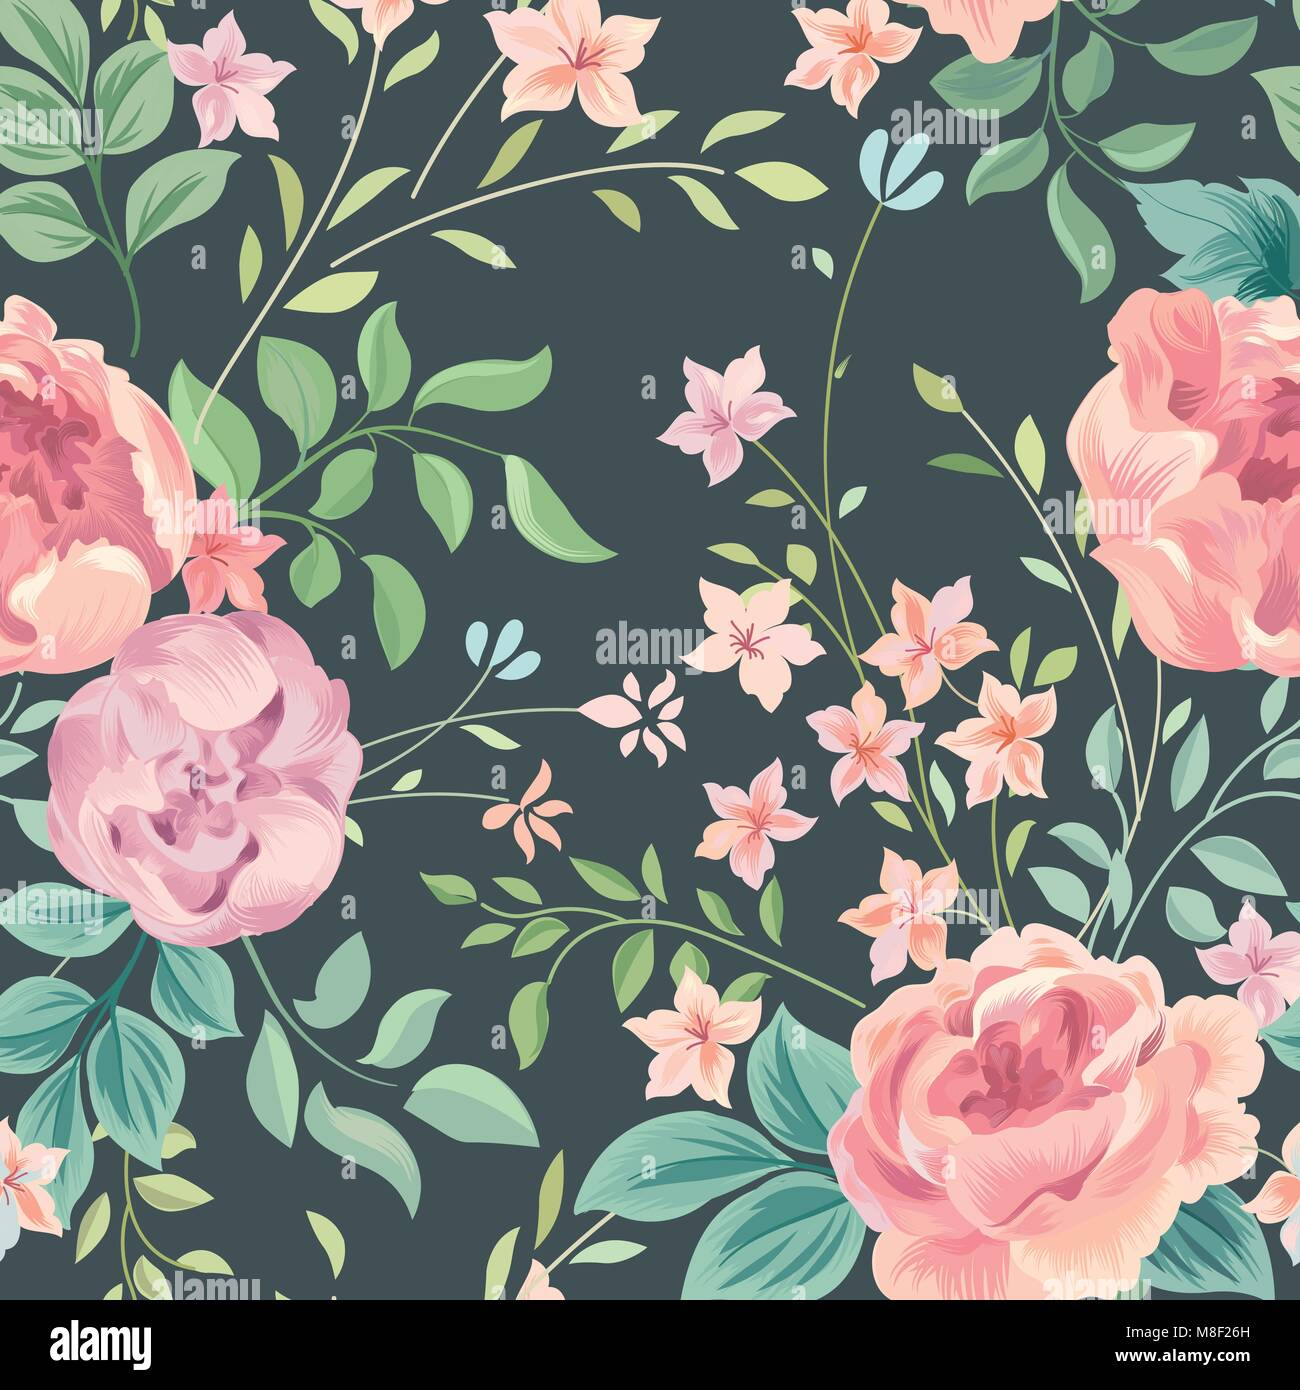 Flower rose and leaves on pastel background. Garden flourish wallpaper.